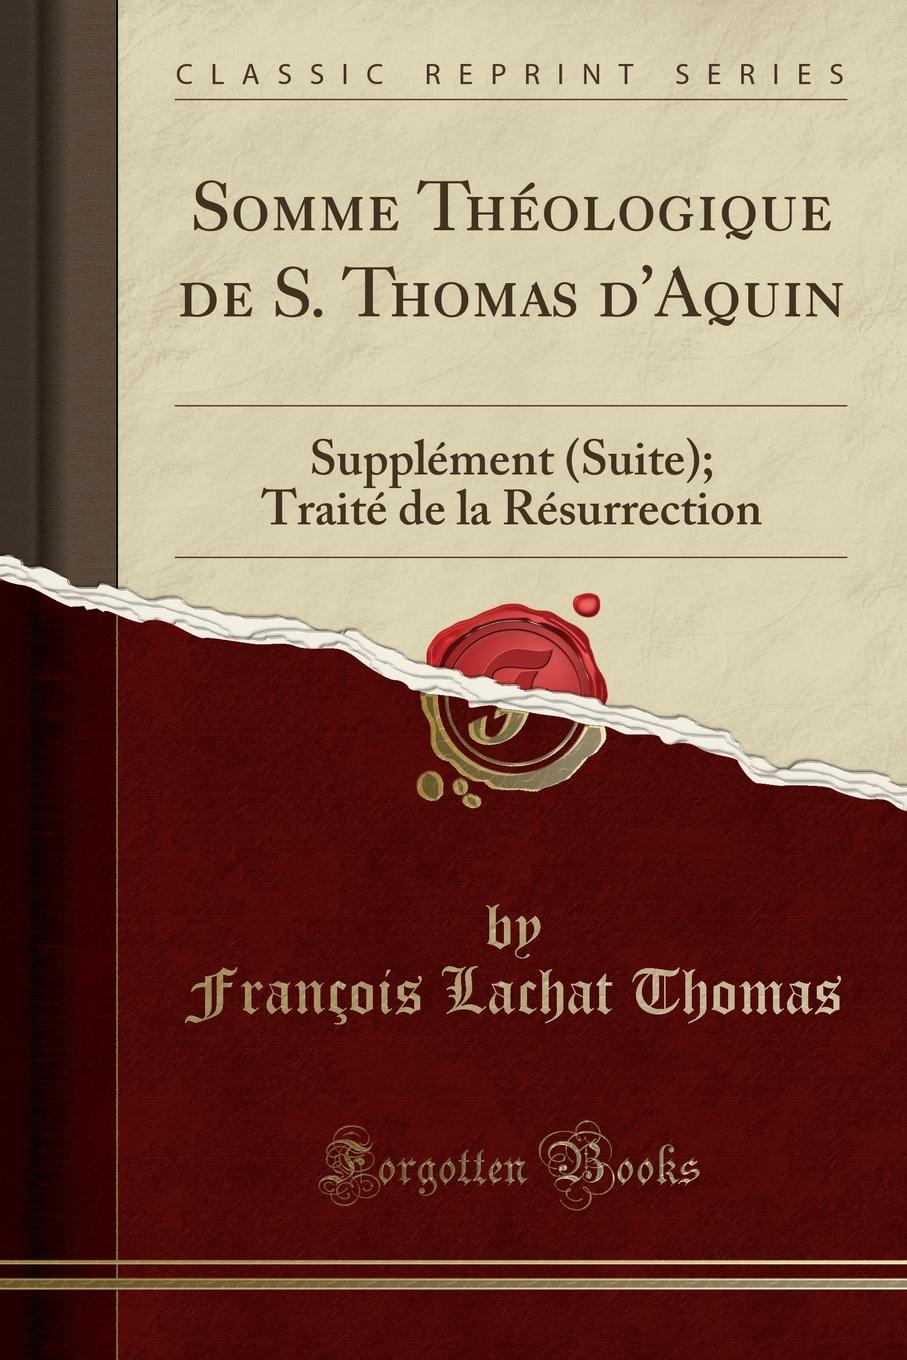 François Lachat Thomas Somme Theologique de S. Thomas d.Aquin. Supplement (Suite); Traite de la Resurrection (Classic Reprint) nevzorov alexander mes petitions seront ils soutenus